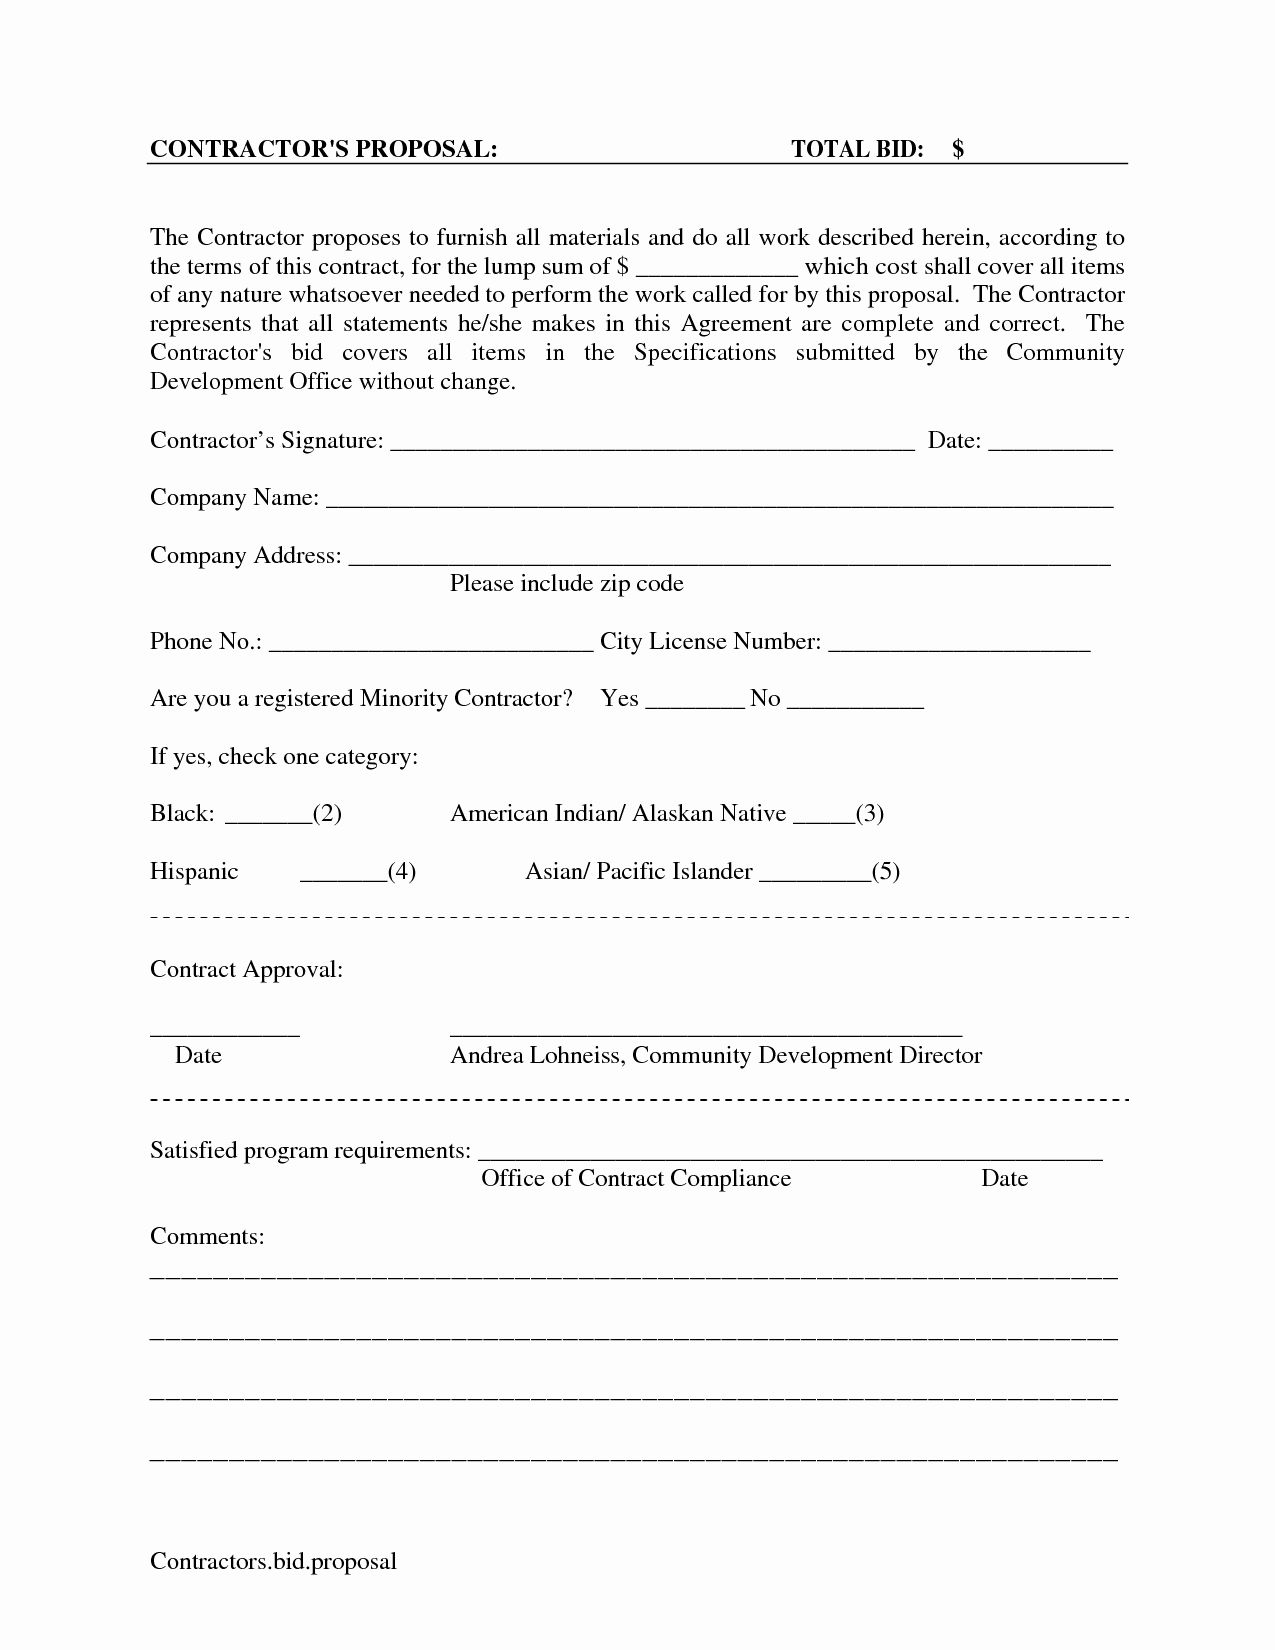 Residential Construction Scope Of Work Template Elegant Printable Blank Bid Proposal Forms Contract Template Proposal Templates Free Business Proposal Template